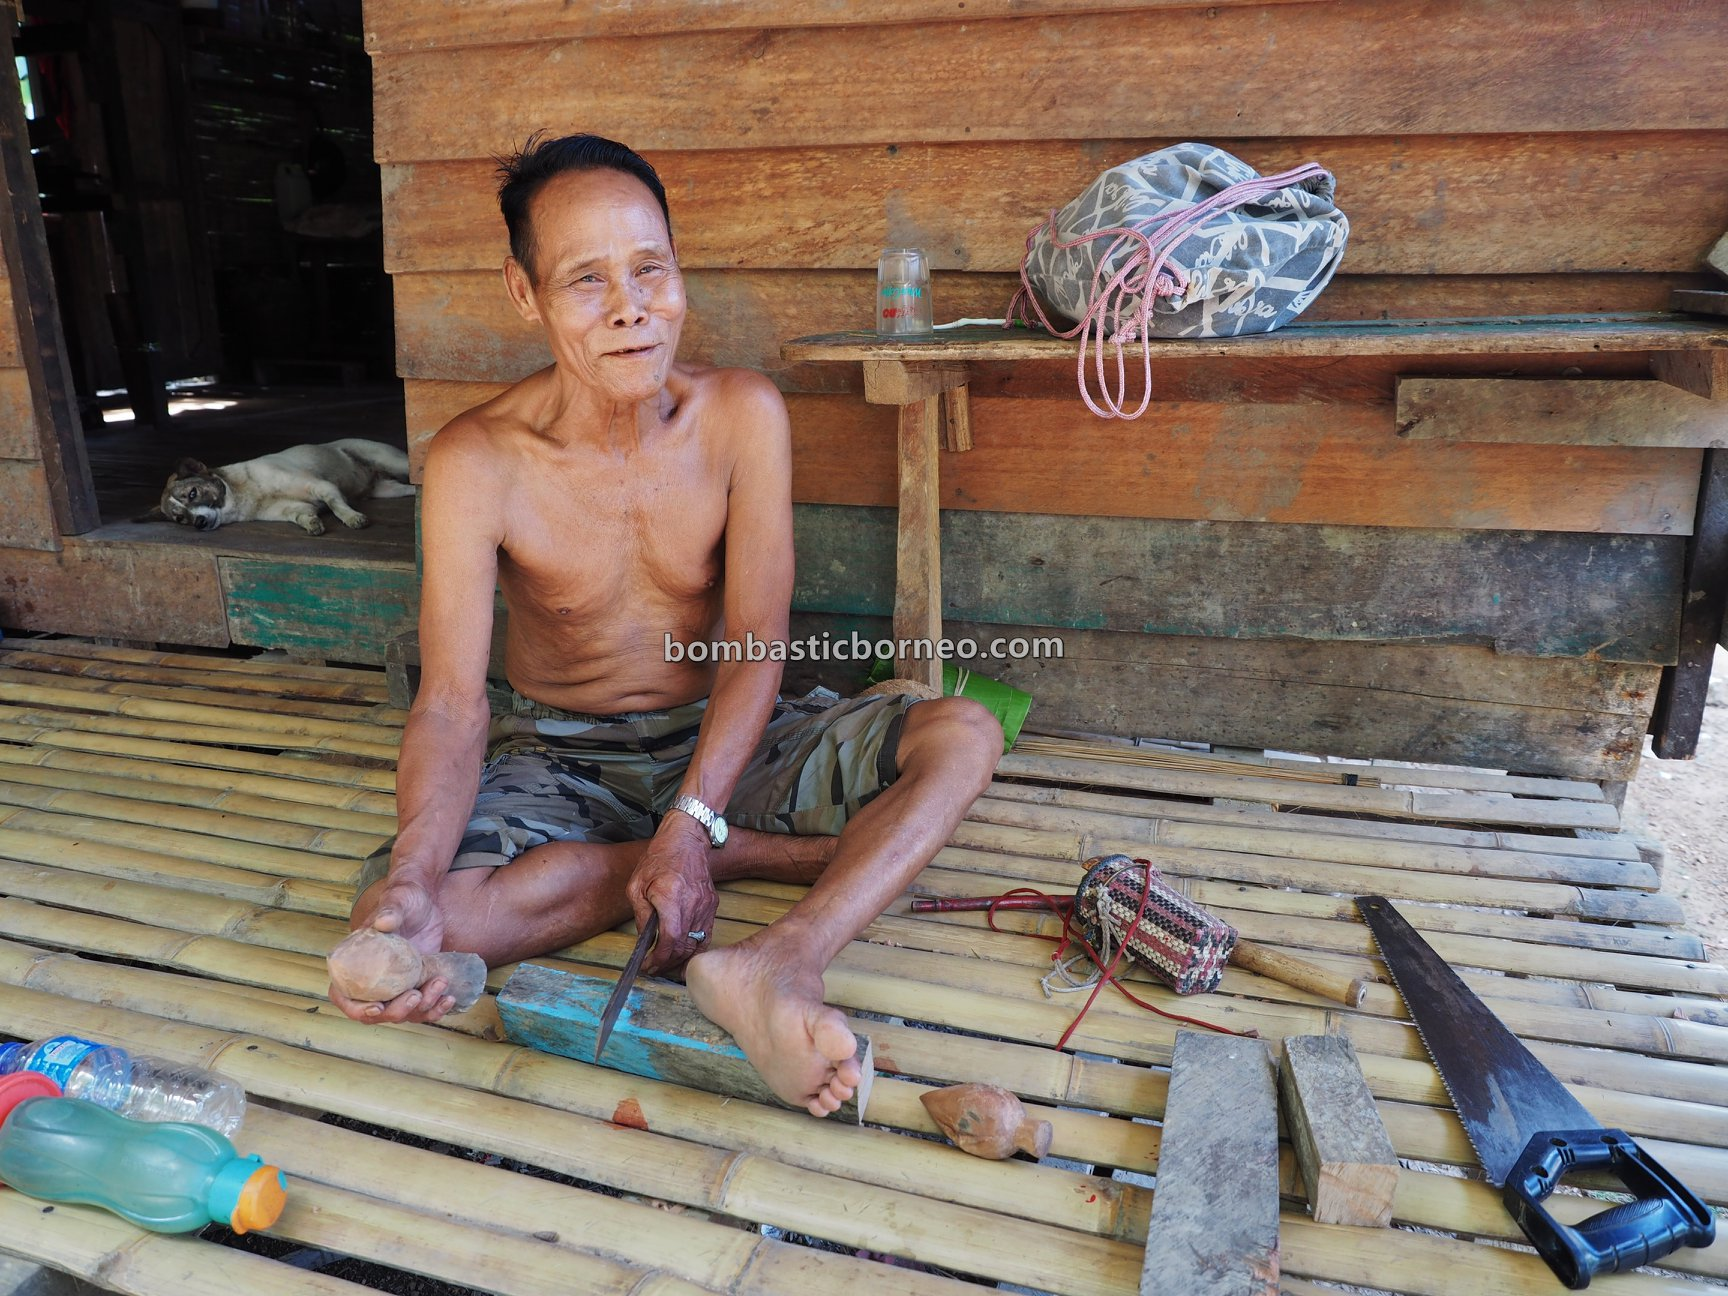 Dusun Anep, traditional, Bengkayang, Indonesia, Siding, Ethnic, native, tribal, tribe, village, Tourism, Travel guide, Borneo, 婆罗洲 原住民部落, 西加里曼丹达雅,